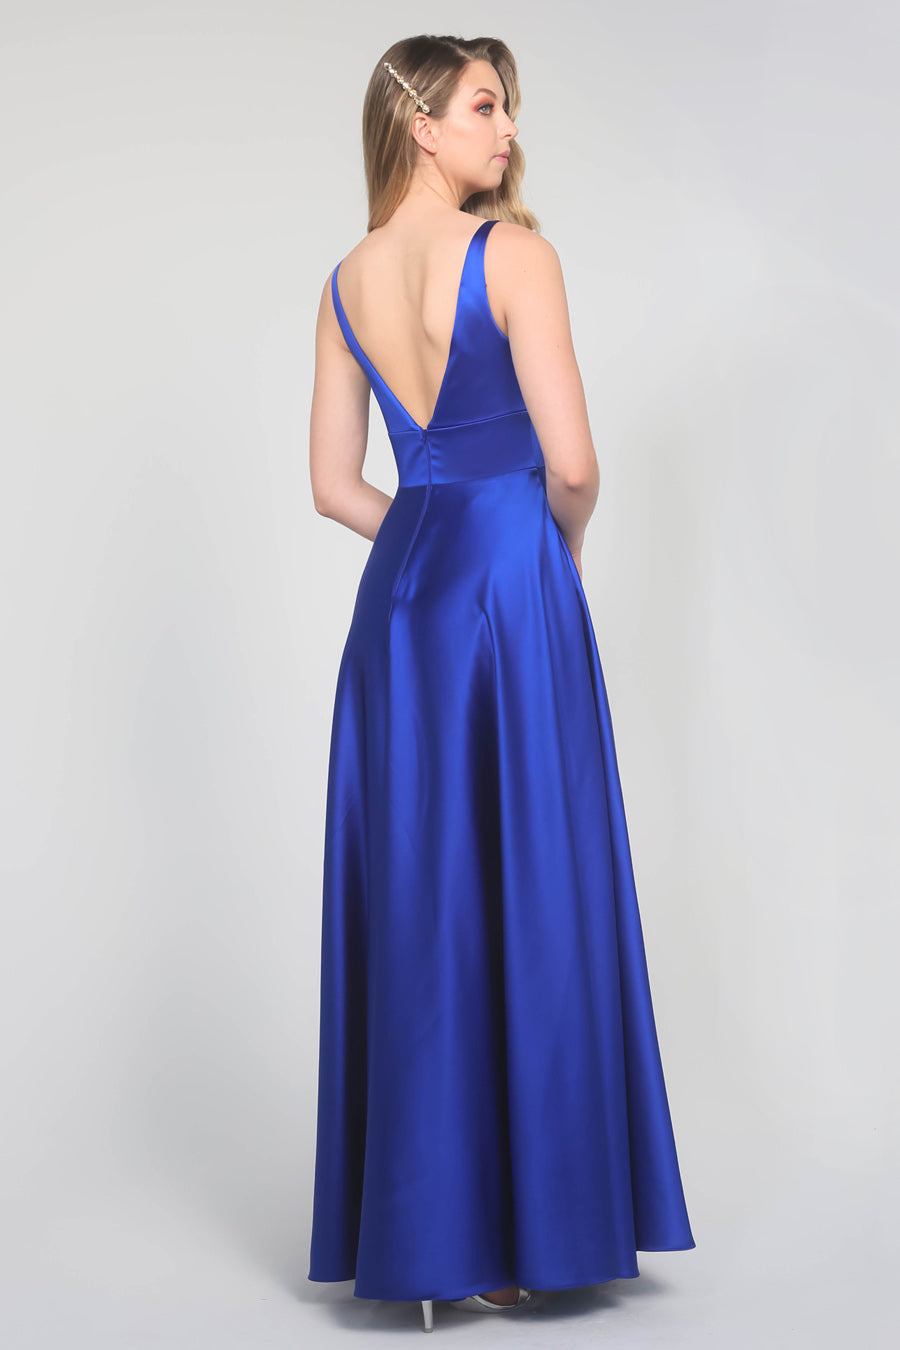 Tinaholy - BA269 Royal Blue